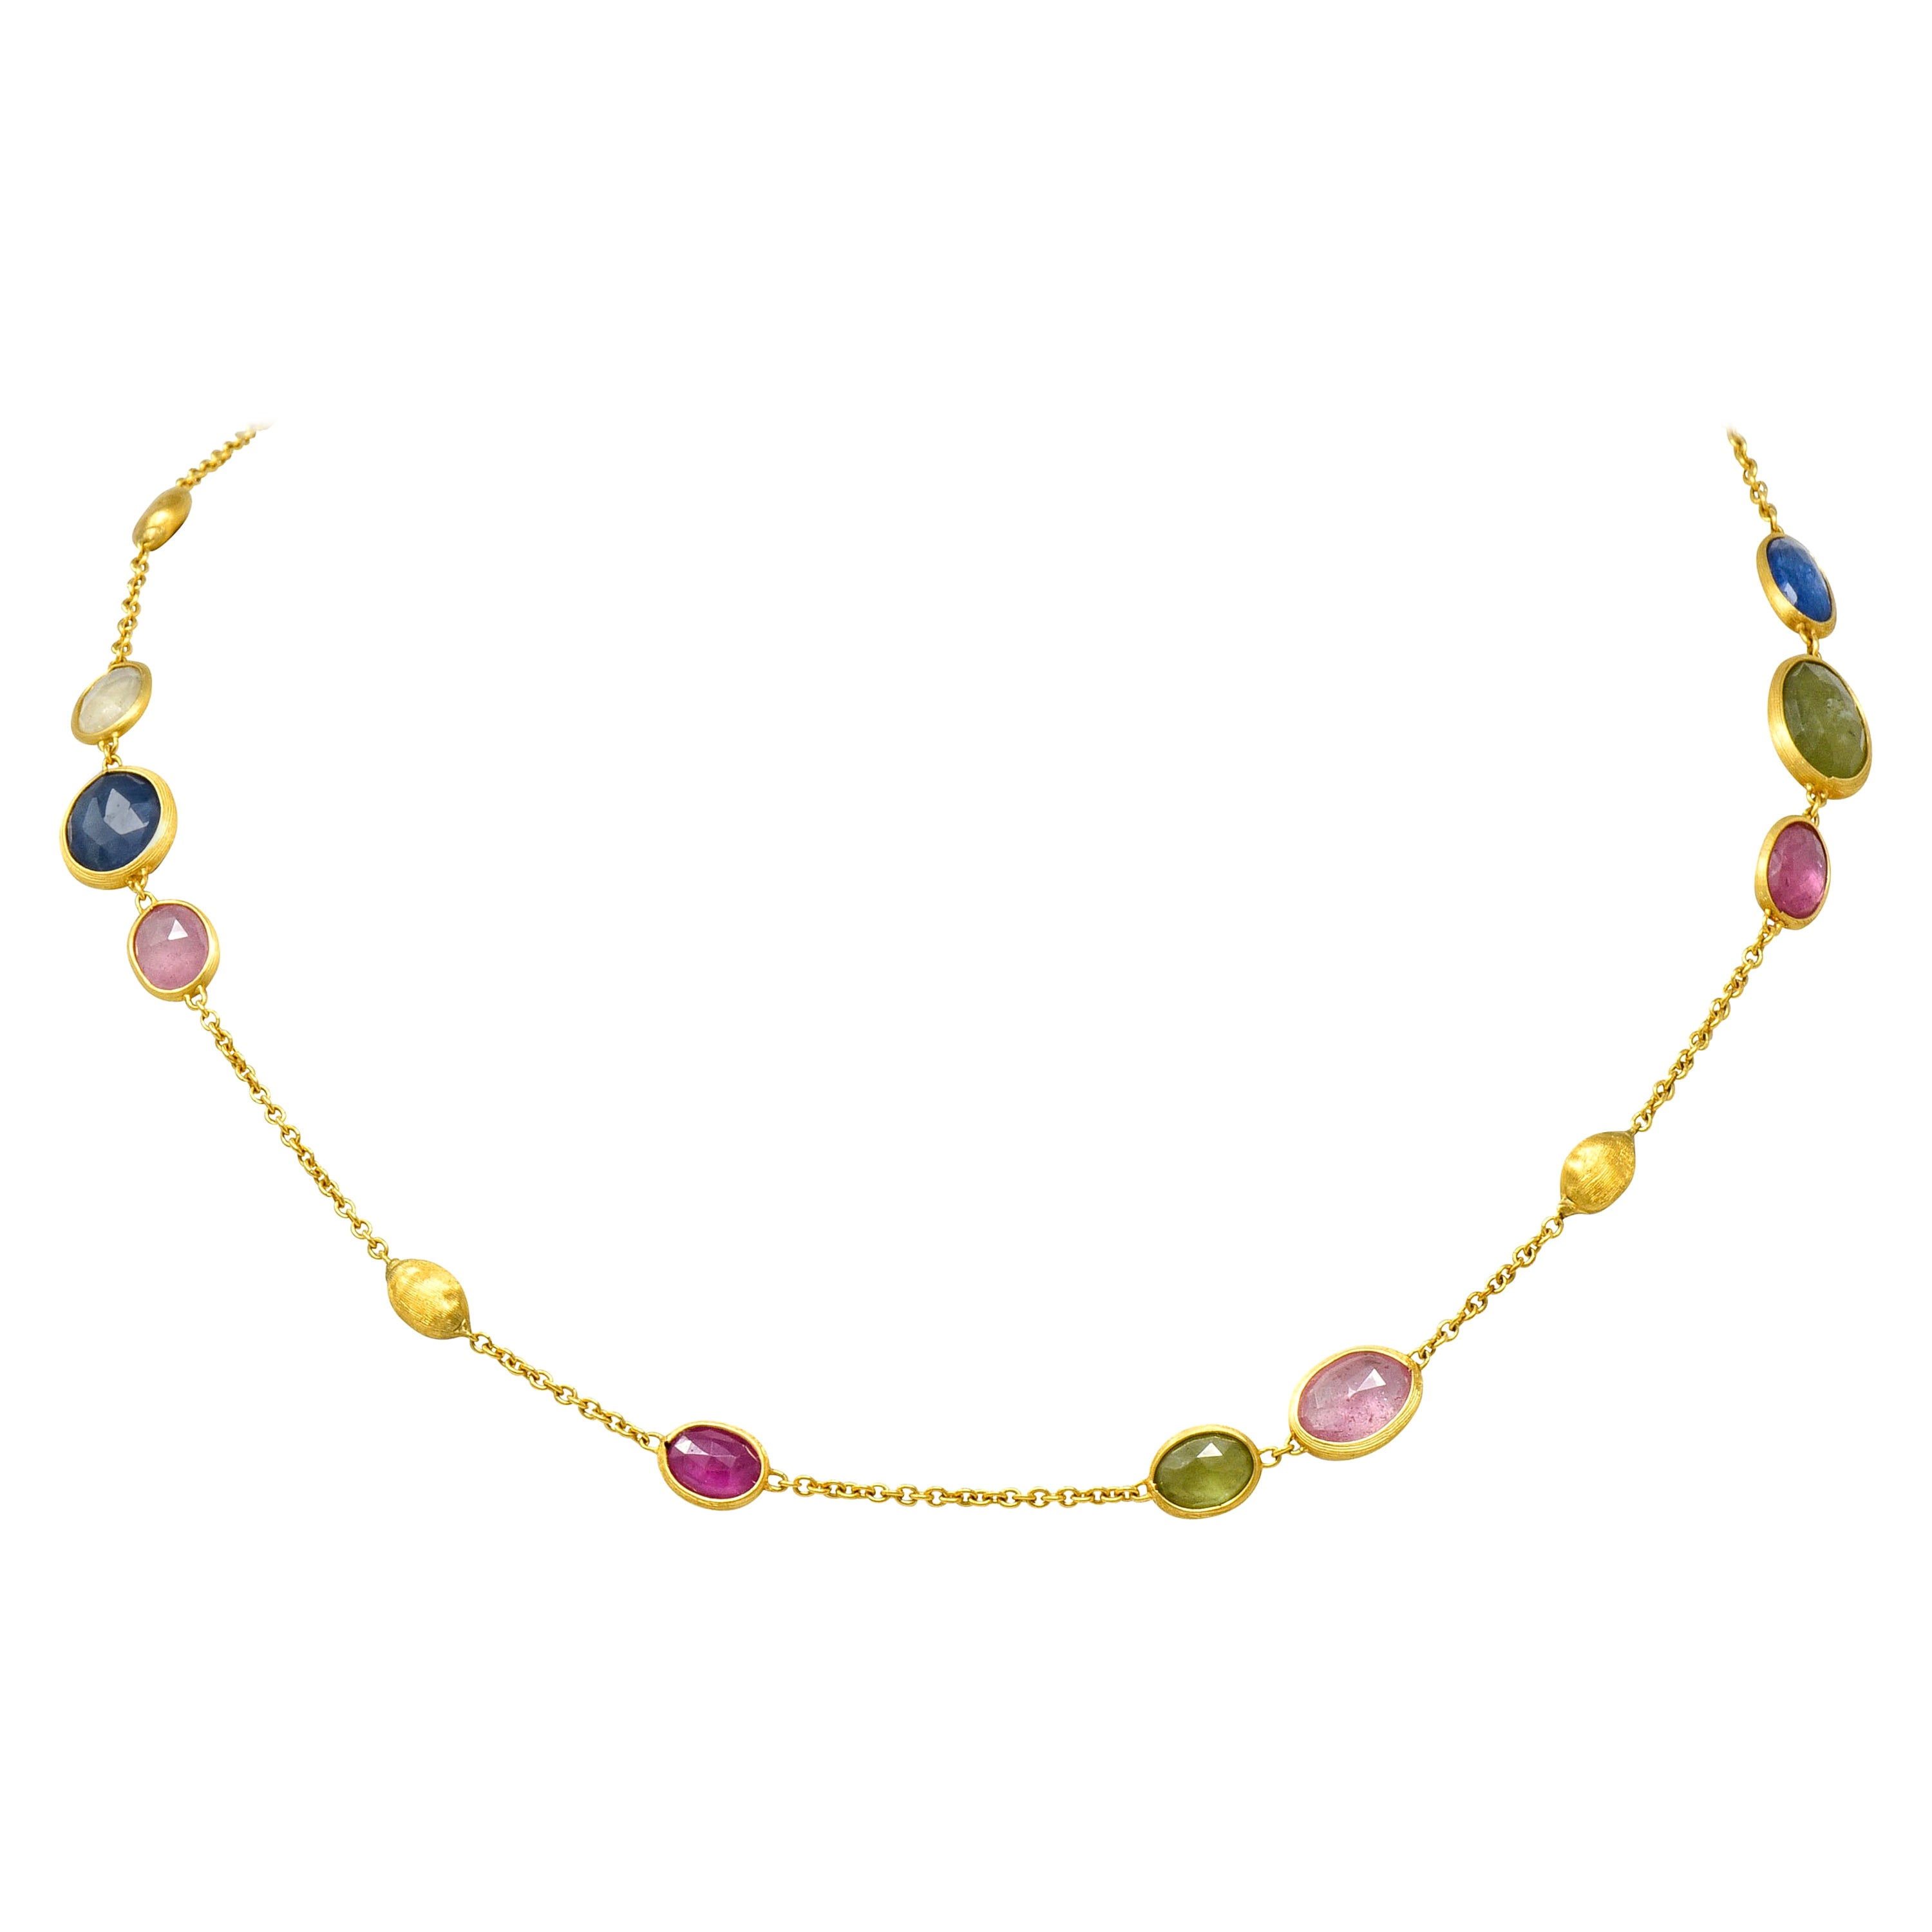 Marco Bicego Sapphire 18 Karat Yellow Gold Confetti Necklace